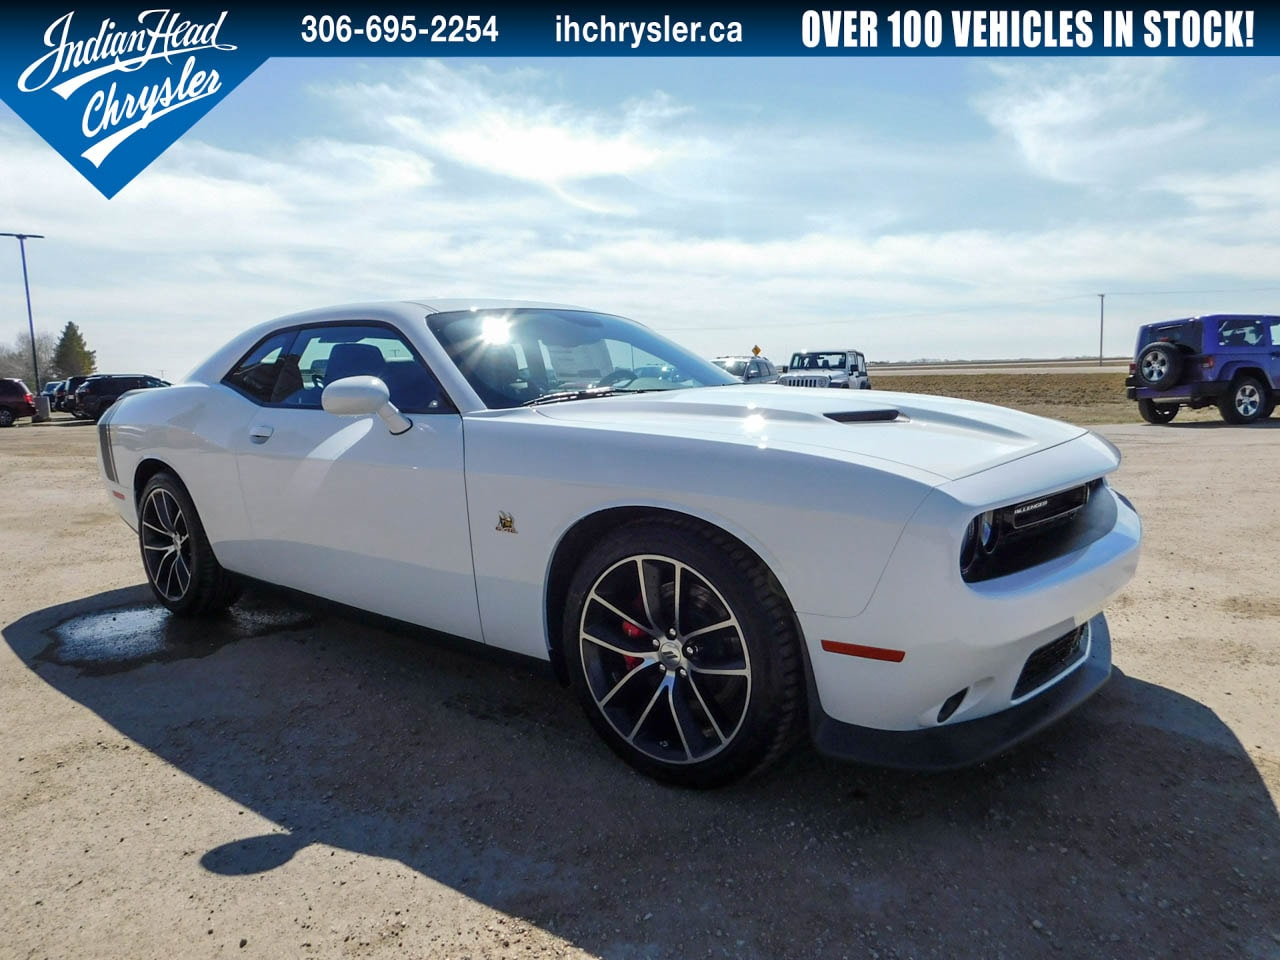 2018 Dodge Challenger R/T 392 | Leather | Nav | Sunroof Coupe